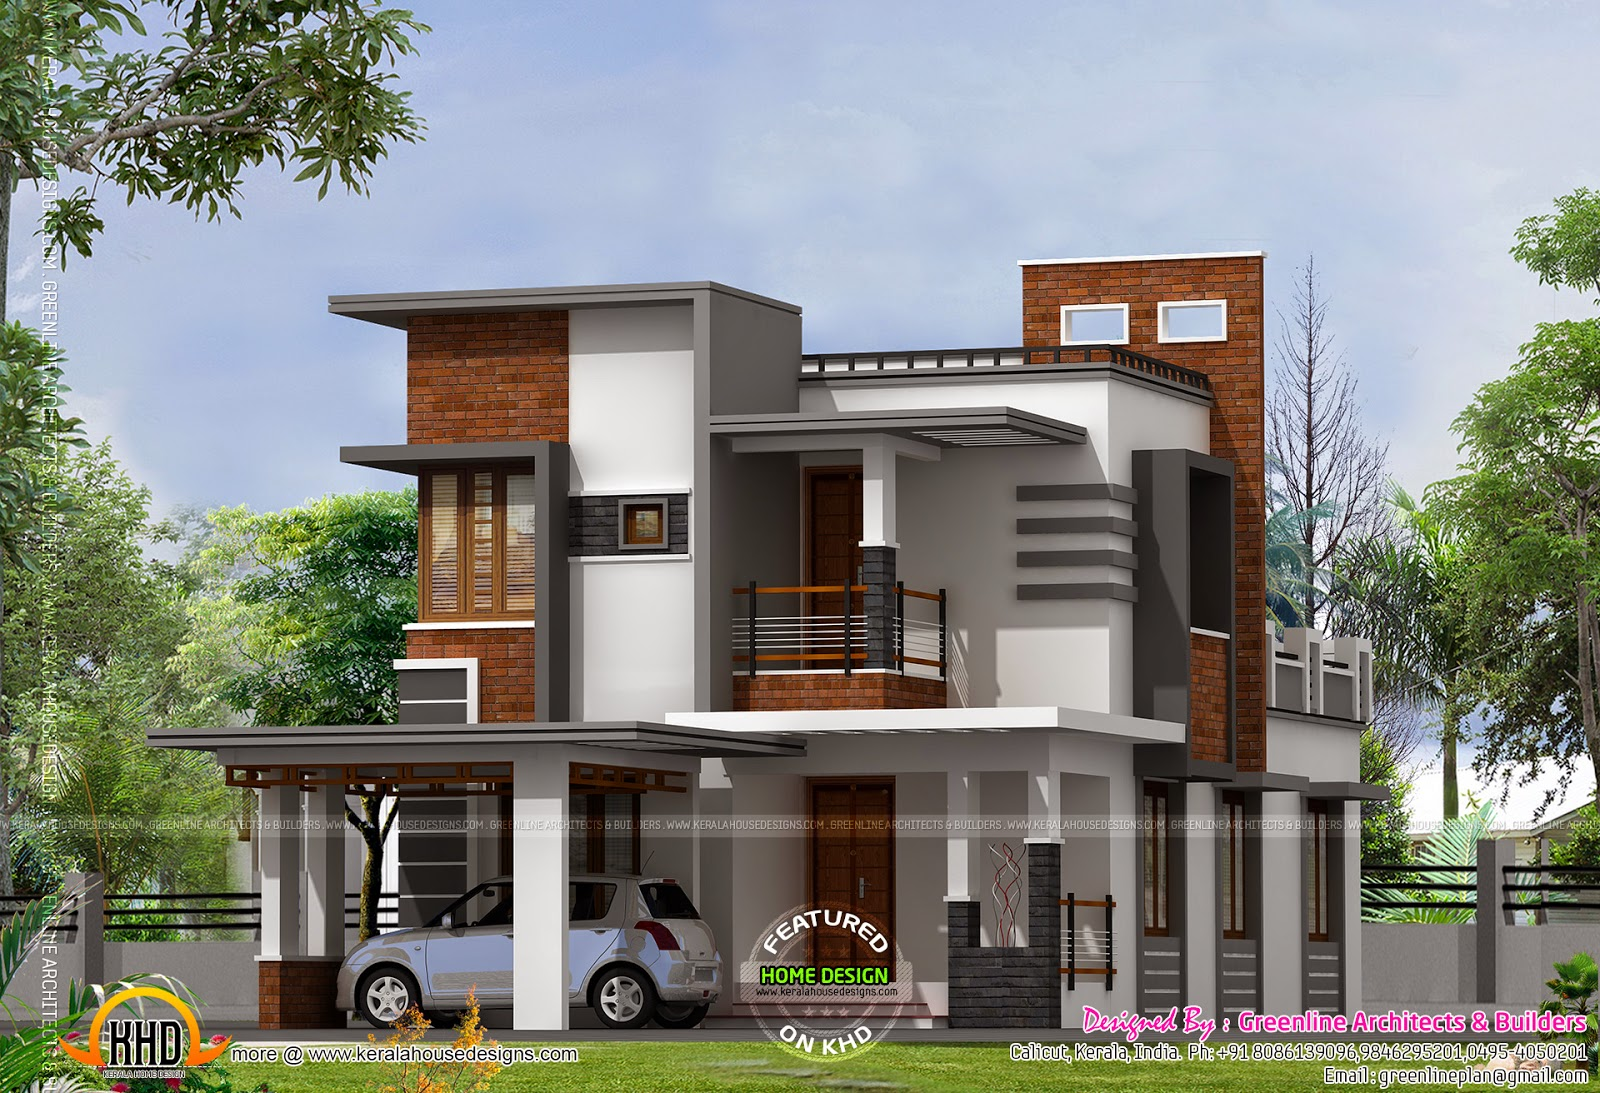 Low cost contemporary house kerala home design and floor plans Home design and cost